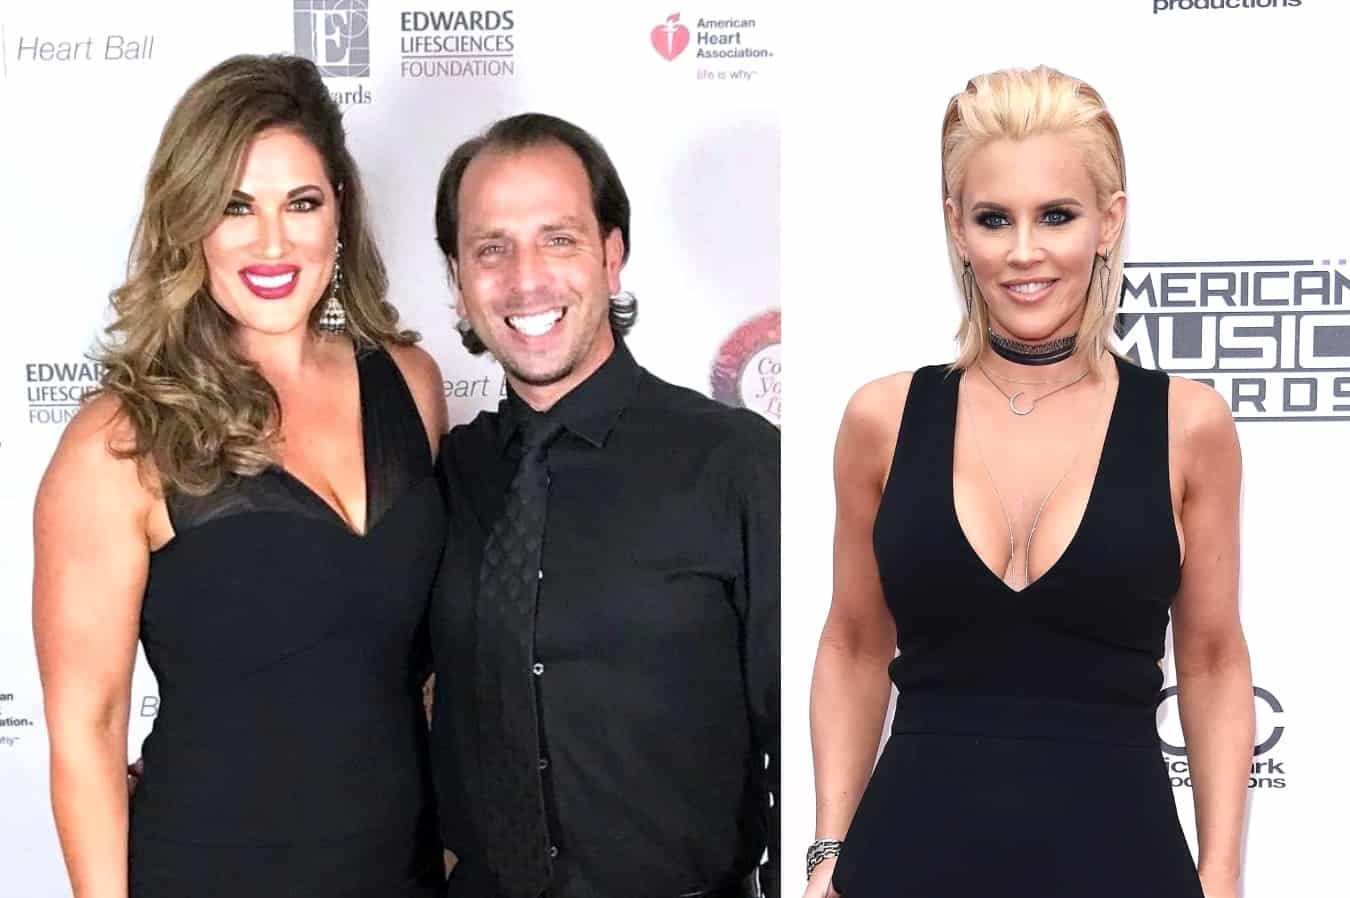 """RHOC's Shane Simpson Responds to Jenny McCarthy's """"Loser"""" Diss as Emily Simpson Shares Her Top Weight Loss Secret and Reacts to """"S**t-Stirrer"""" Accusations"""